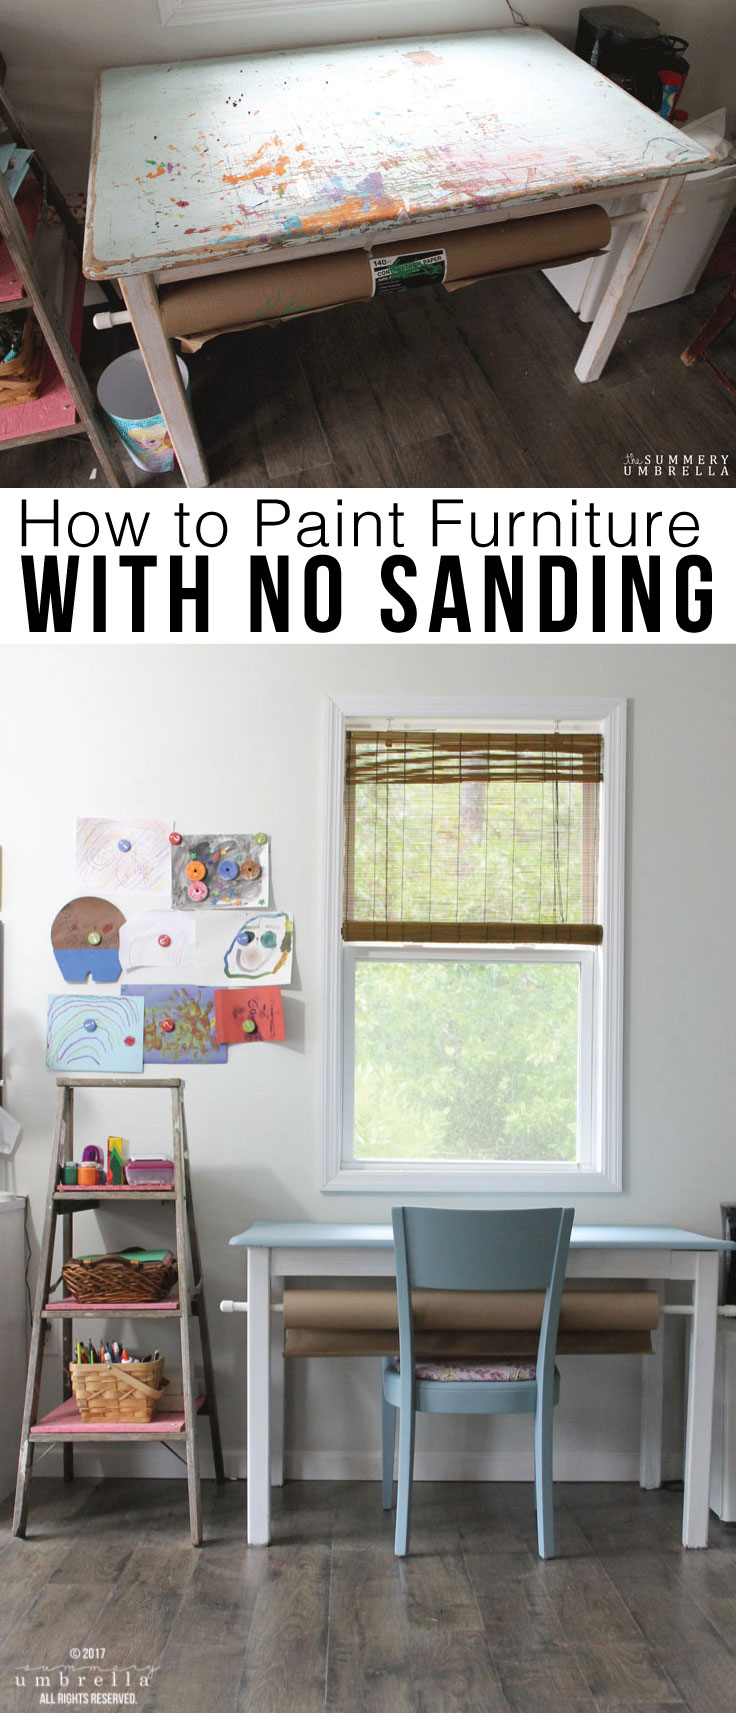 Learn how to paint furniture like a pro! It'll only take a few simple steps, and very minimal prep work. Are you in? Let me show you how!